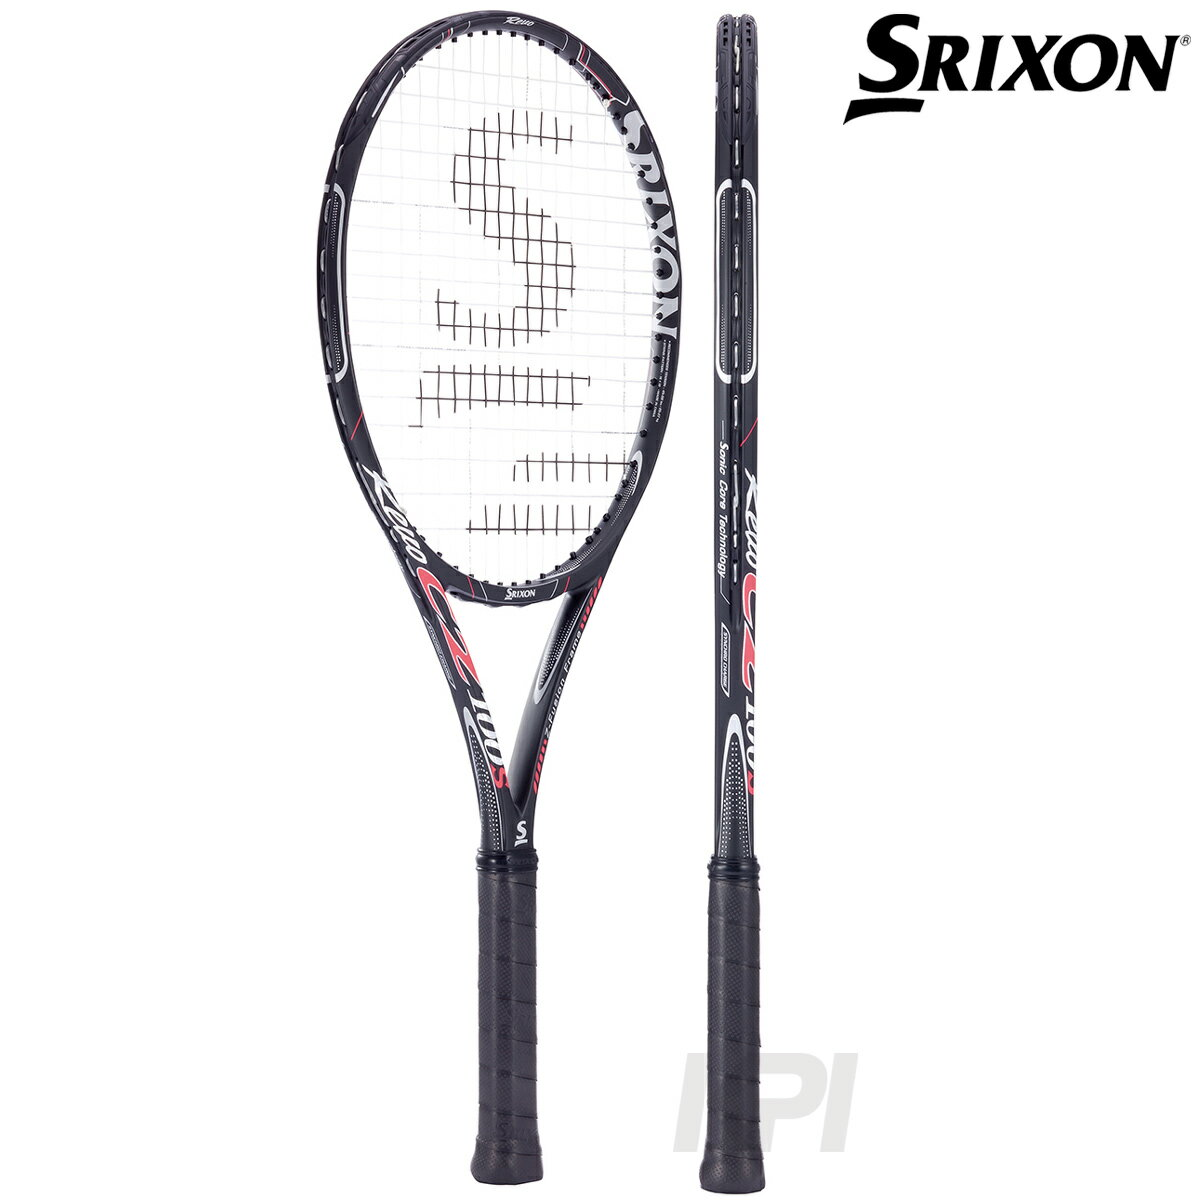 global tennis racquet market With over 15 tennis racquet brands on the market, players are provided  signature tennis racquet become the #1 tennis racquet in the world.